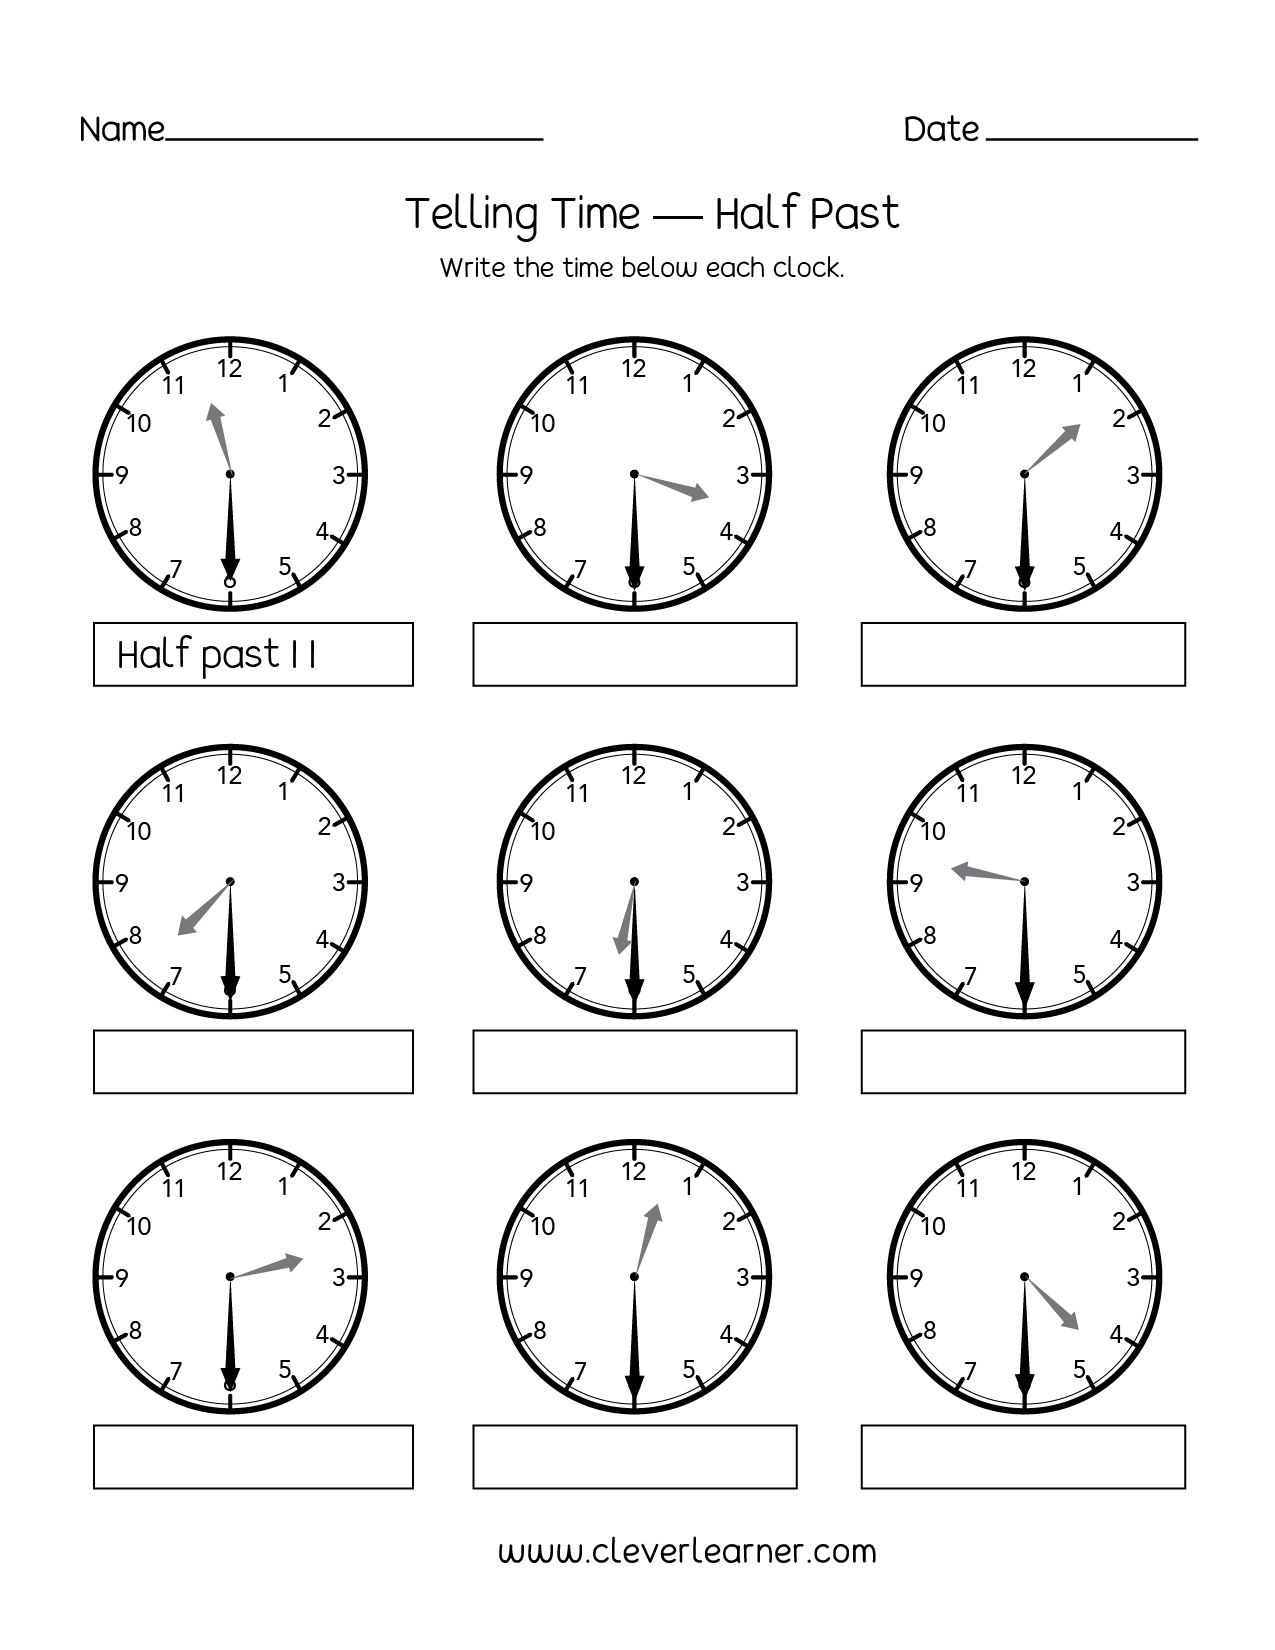 Telling Time Half Past The Hour Worksheets For 1St And 2Nd Graders For Telling Time To The Half Hour Worksheets